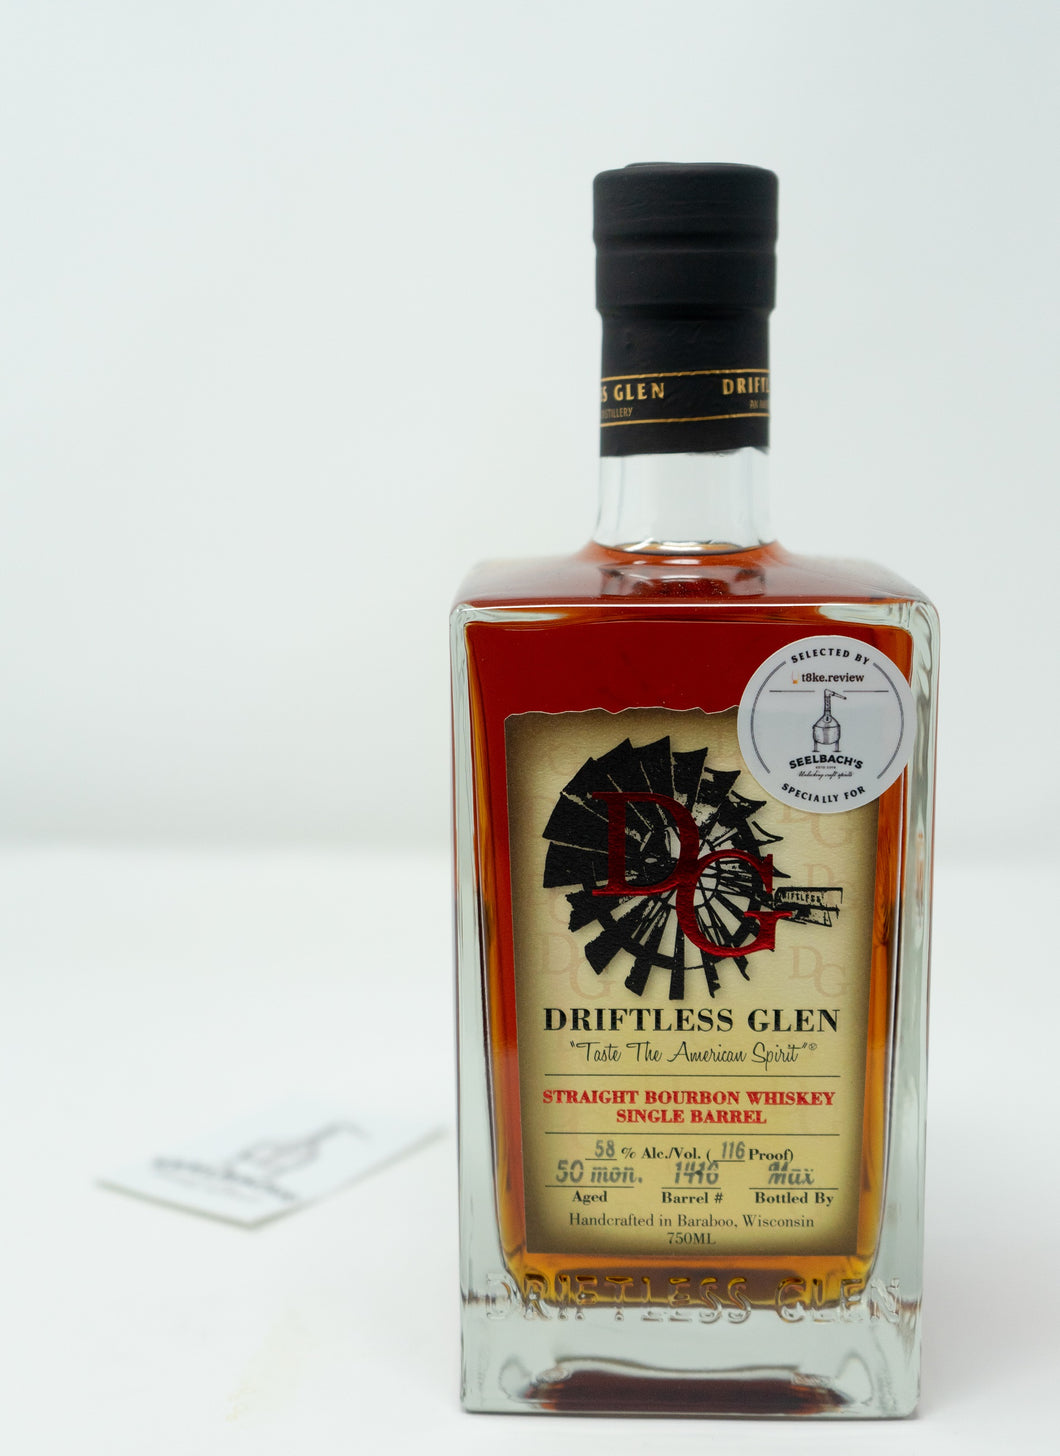 Driftless Glen Distillery Single Barrel Bourbon - T8ke/Seelbach's #1416